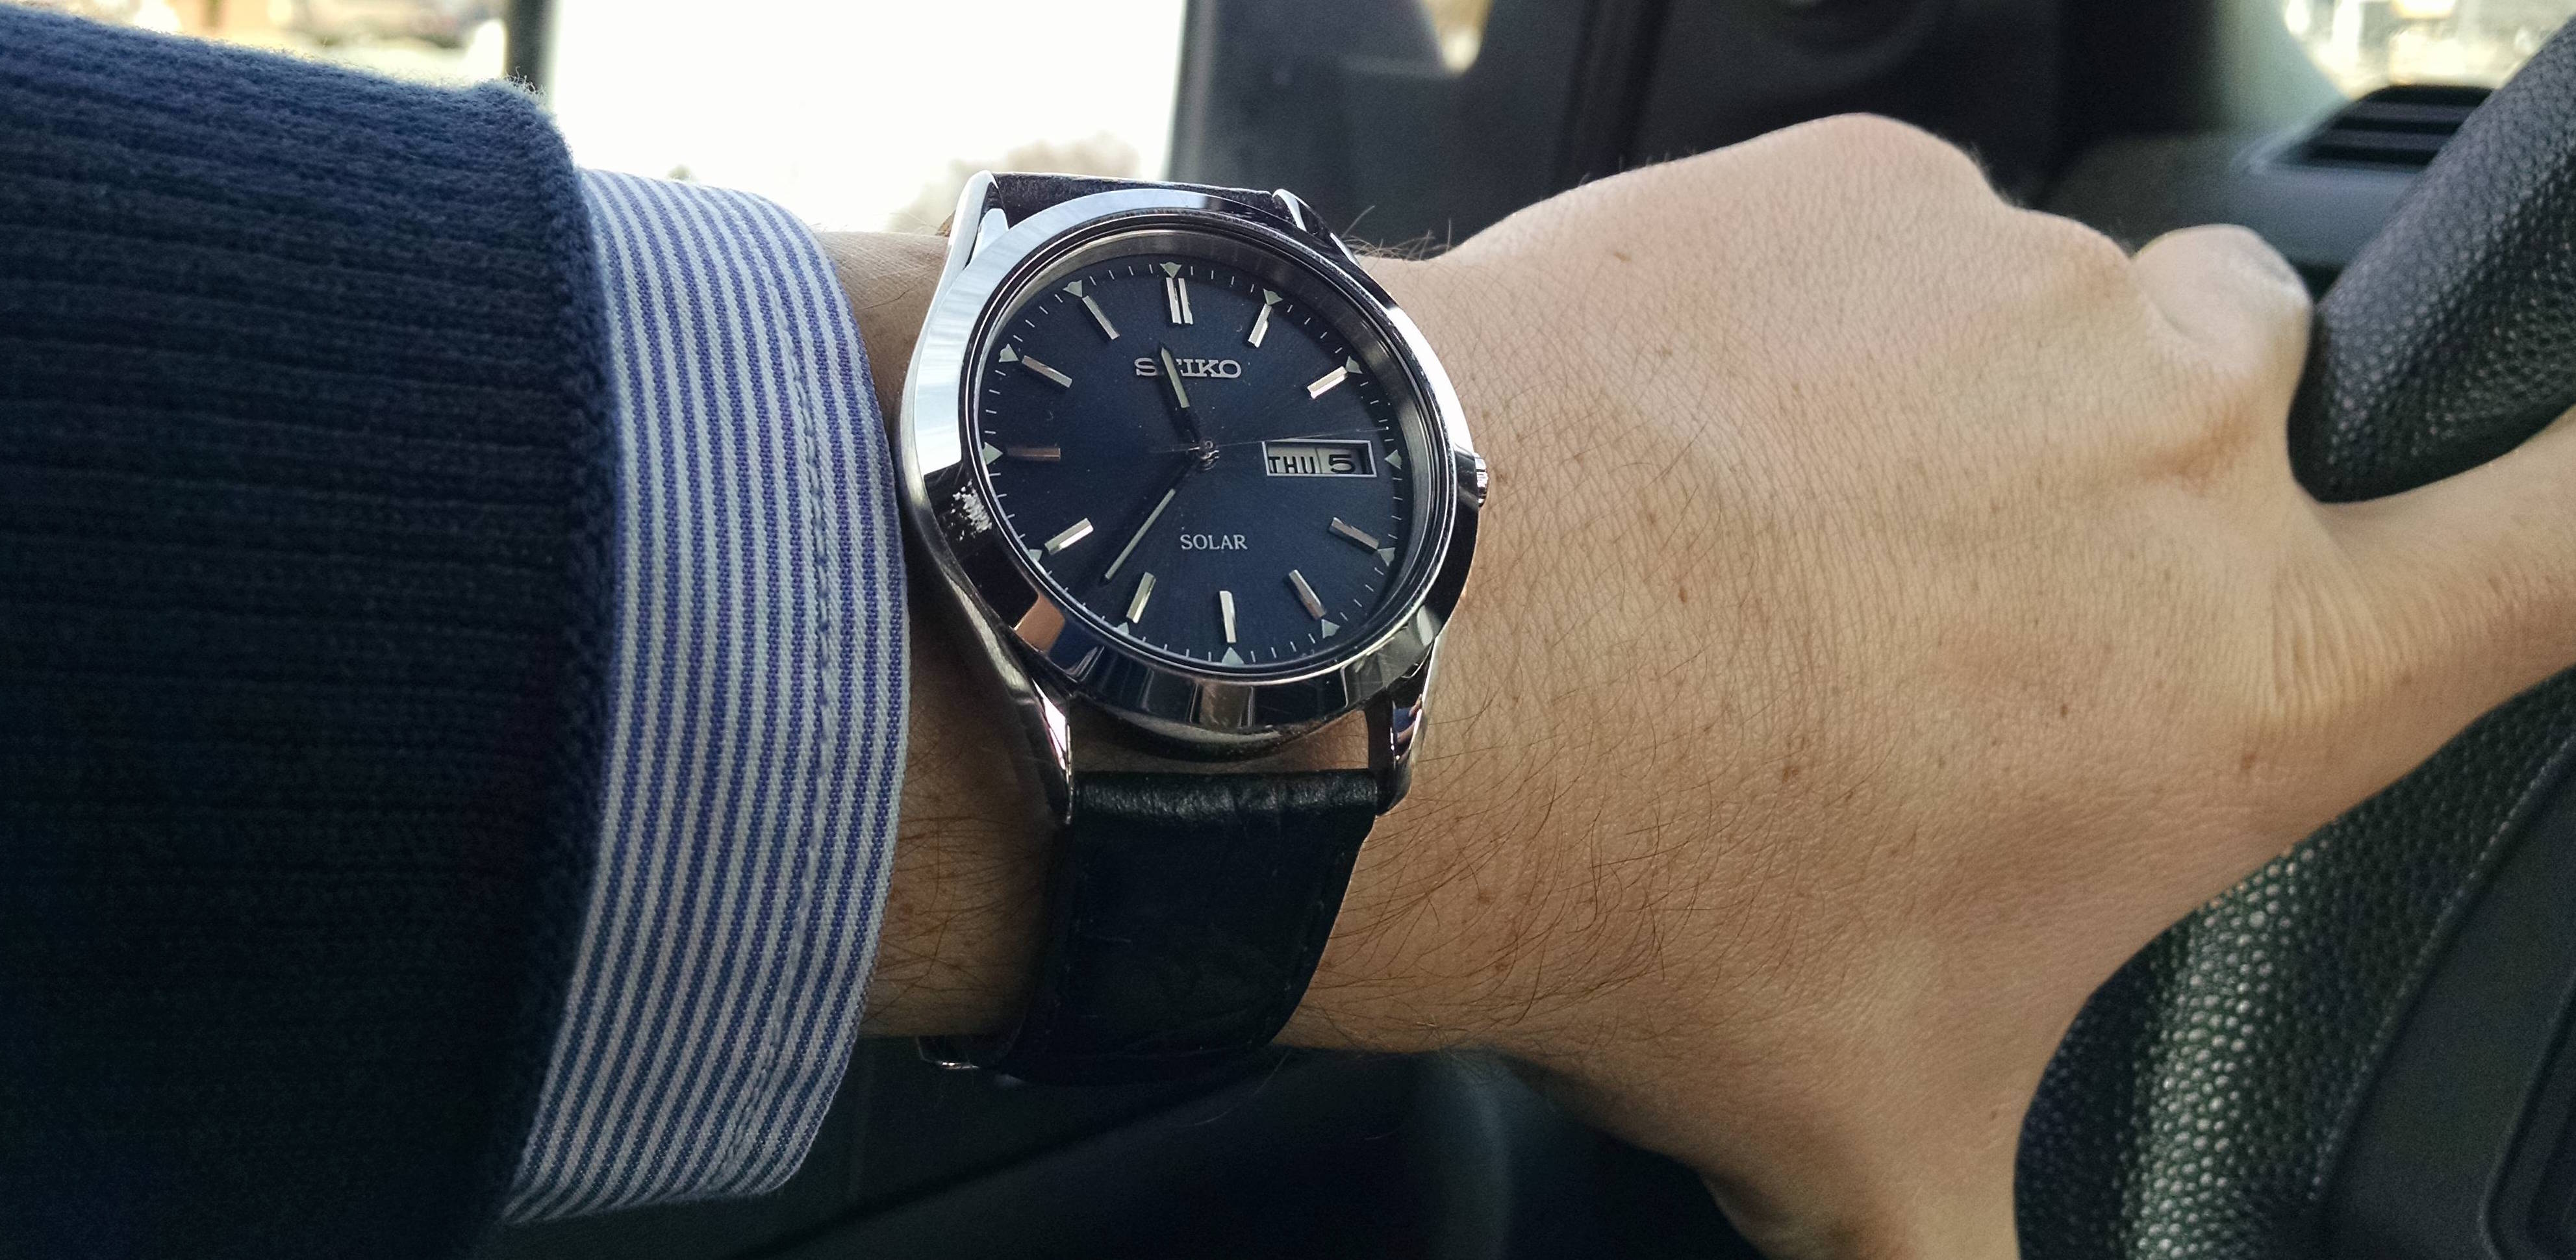 Seiko SNE049 Stainless Steel Solar Watch Review